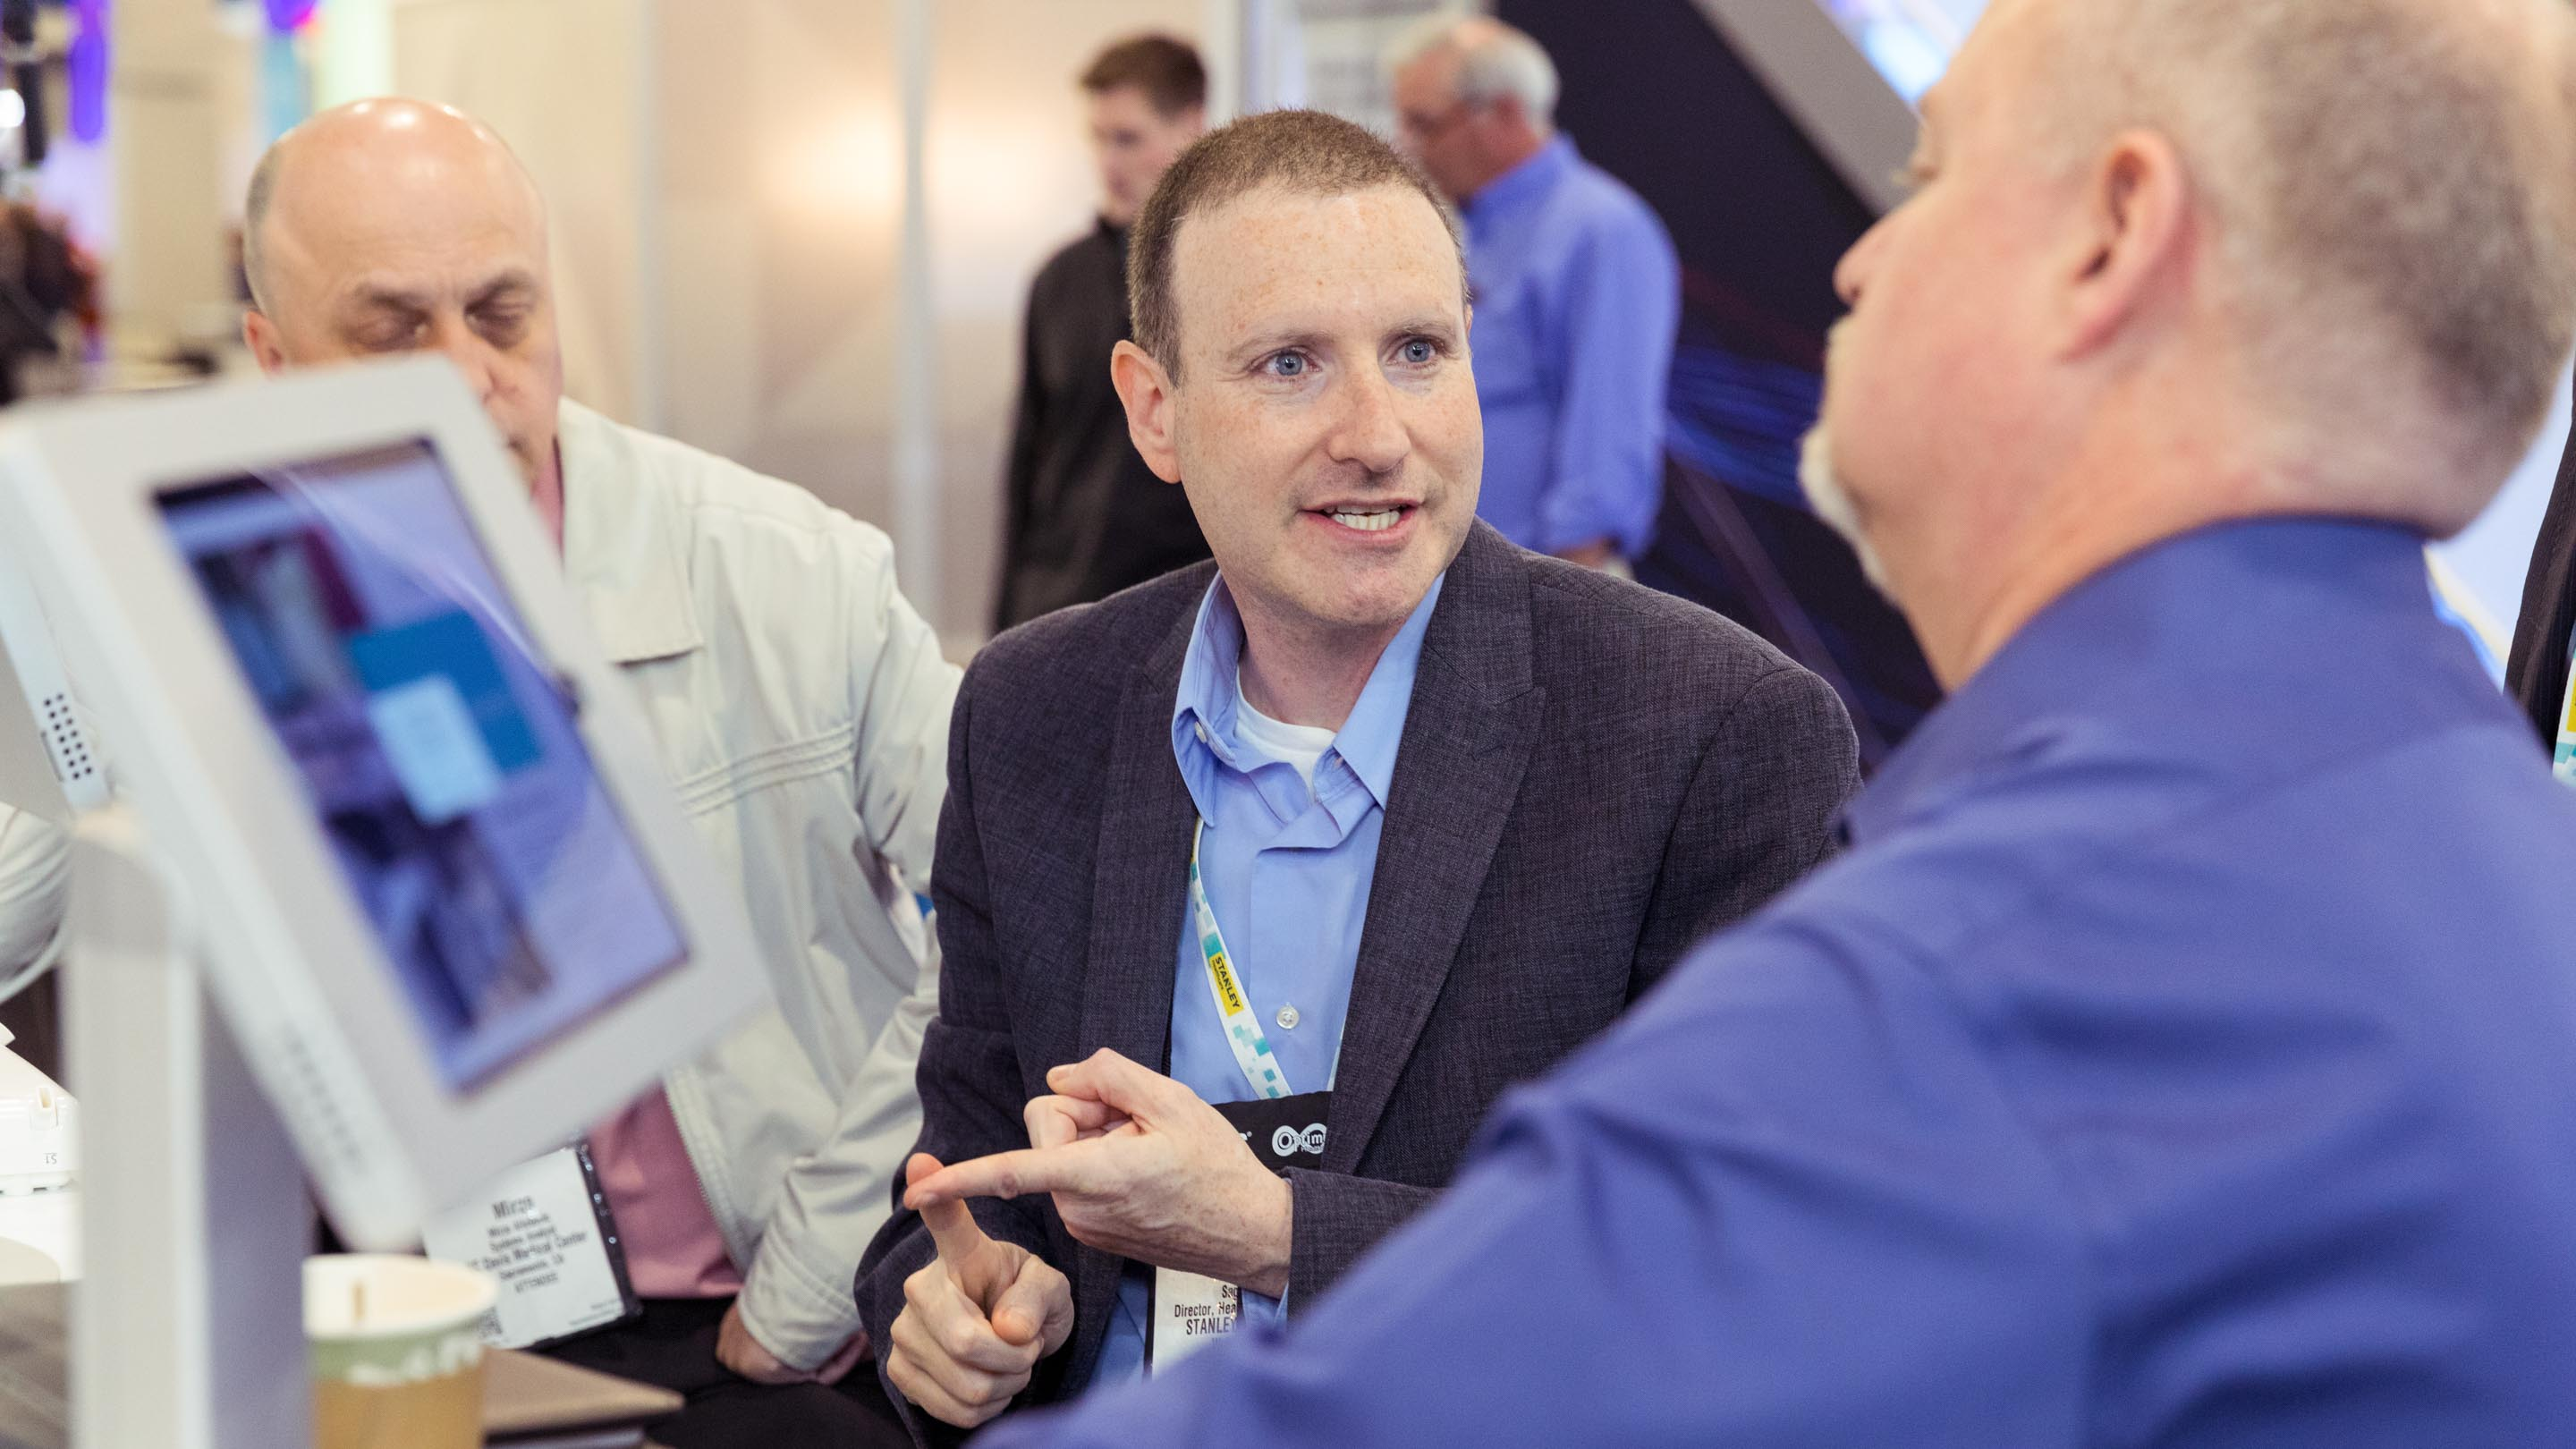 Man speaks to another at STANLEY Healthcare event